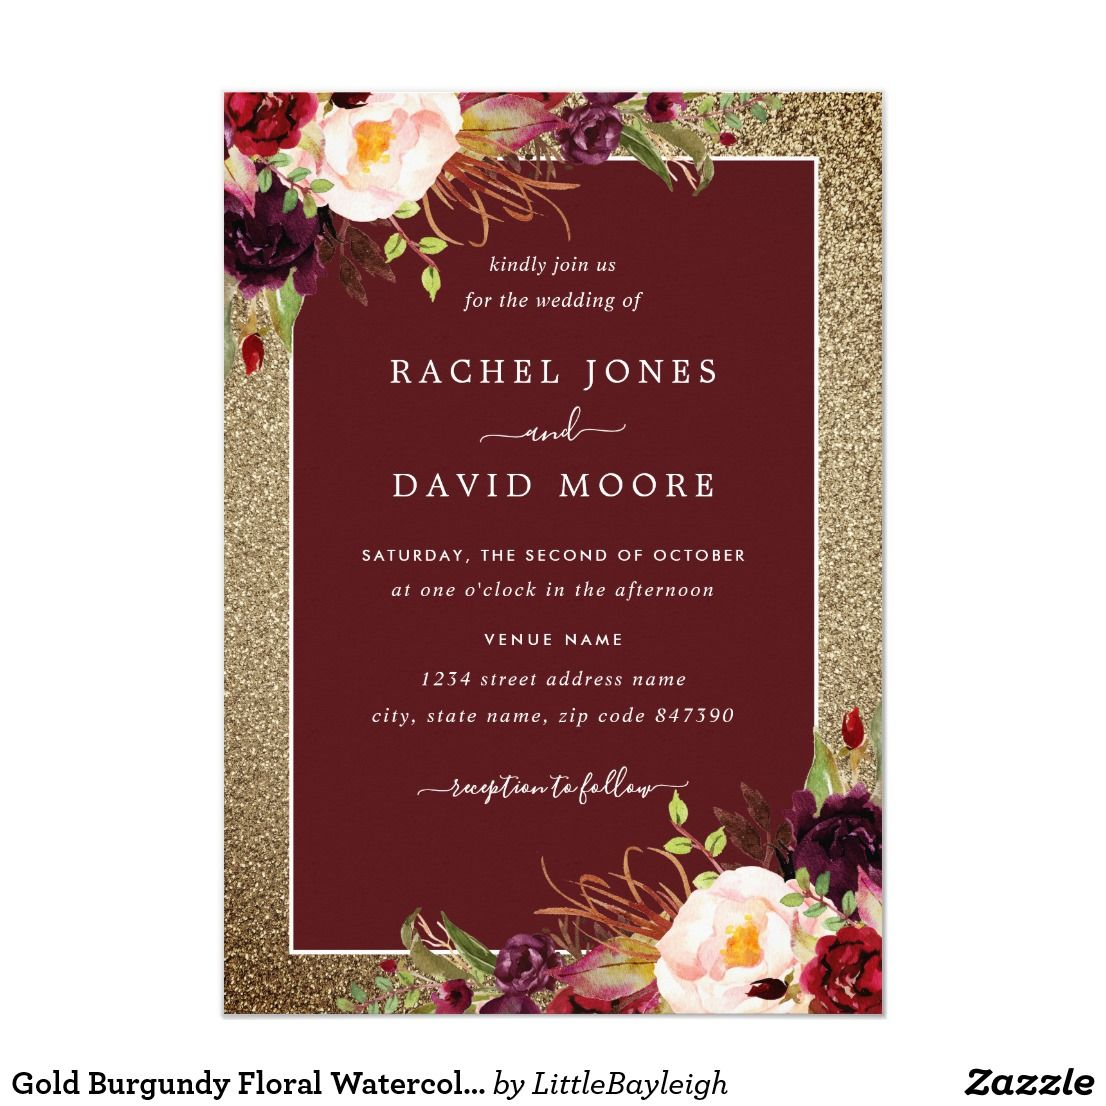 Gold Burgundy Floral Watercolor Wedding Invite